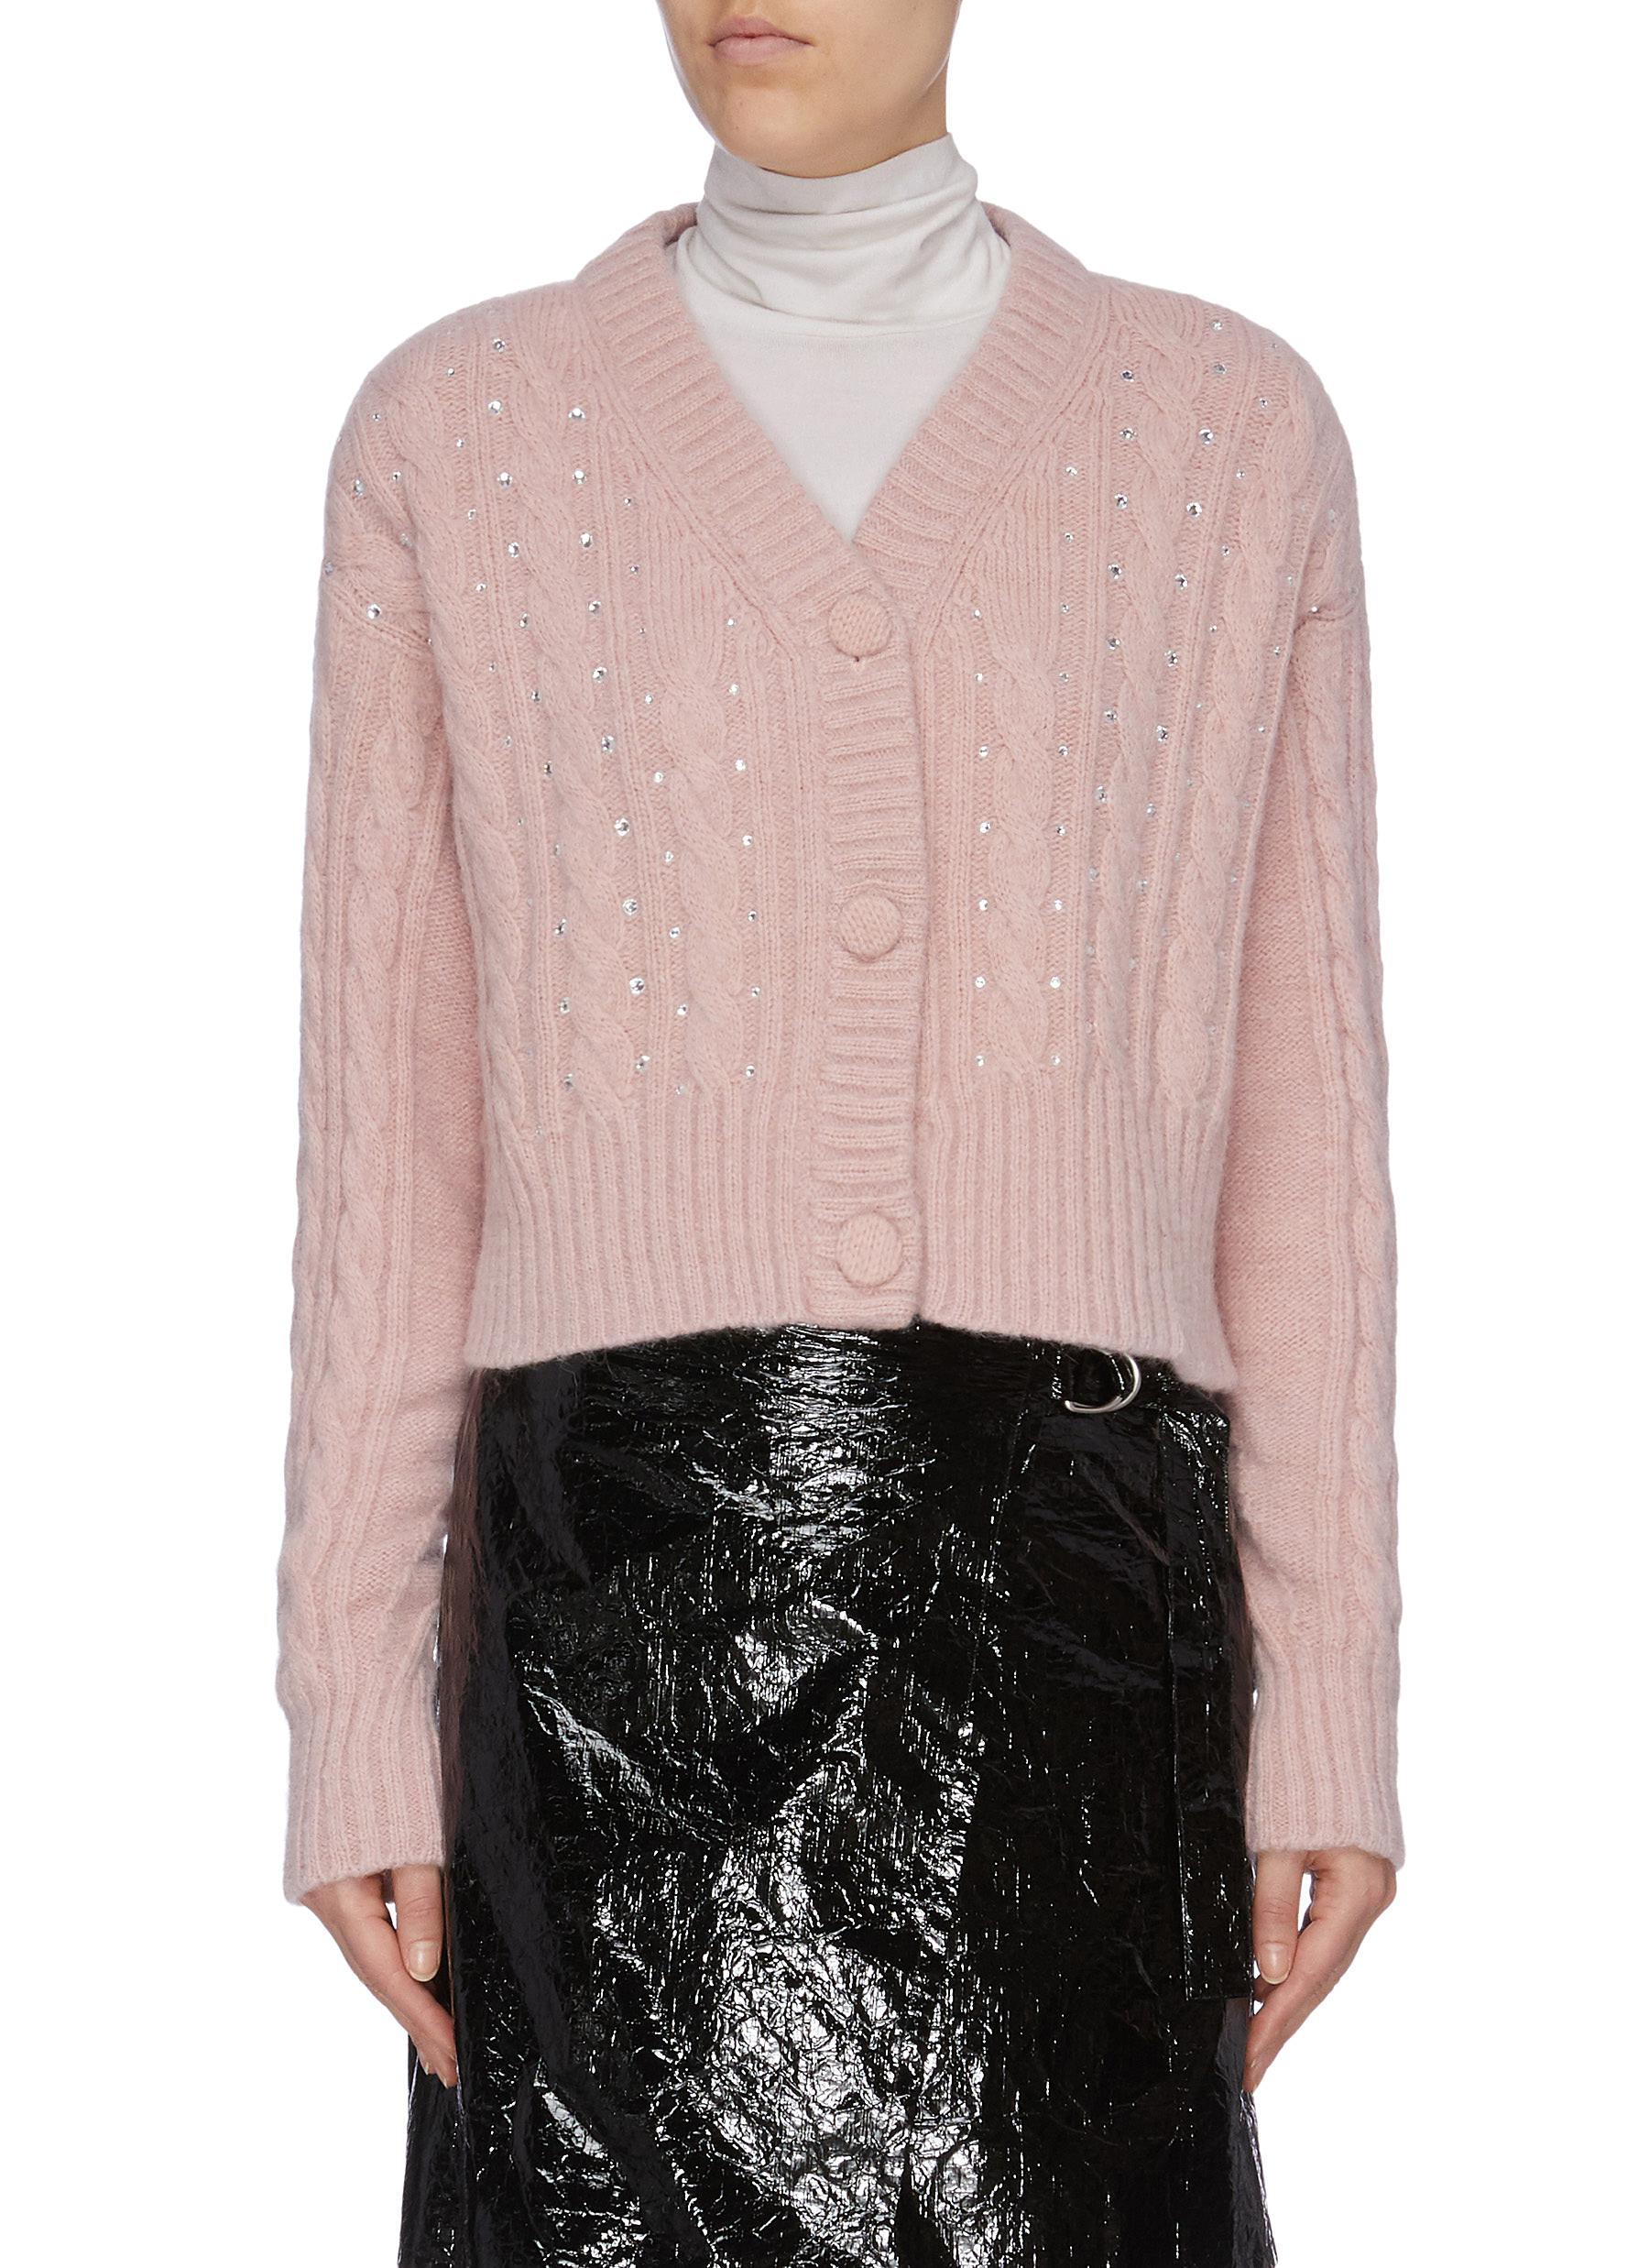 Strass cropped cable knit cardigan by Philosophy Di Lorenzo Serafini